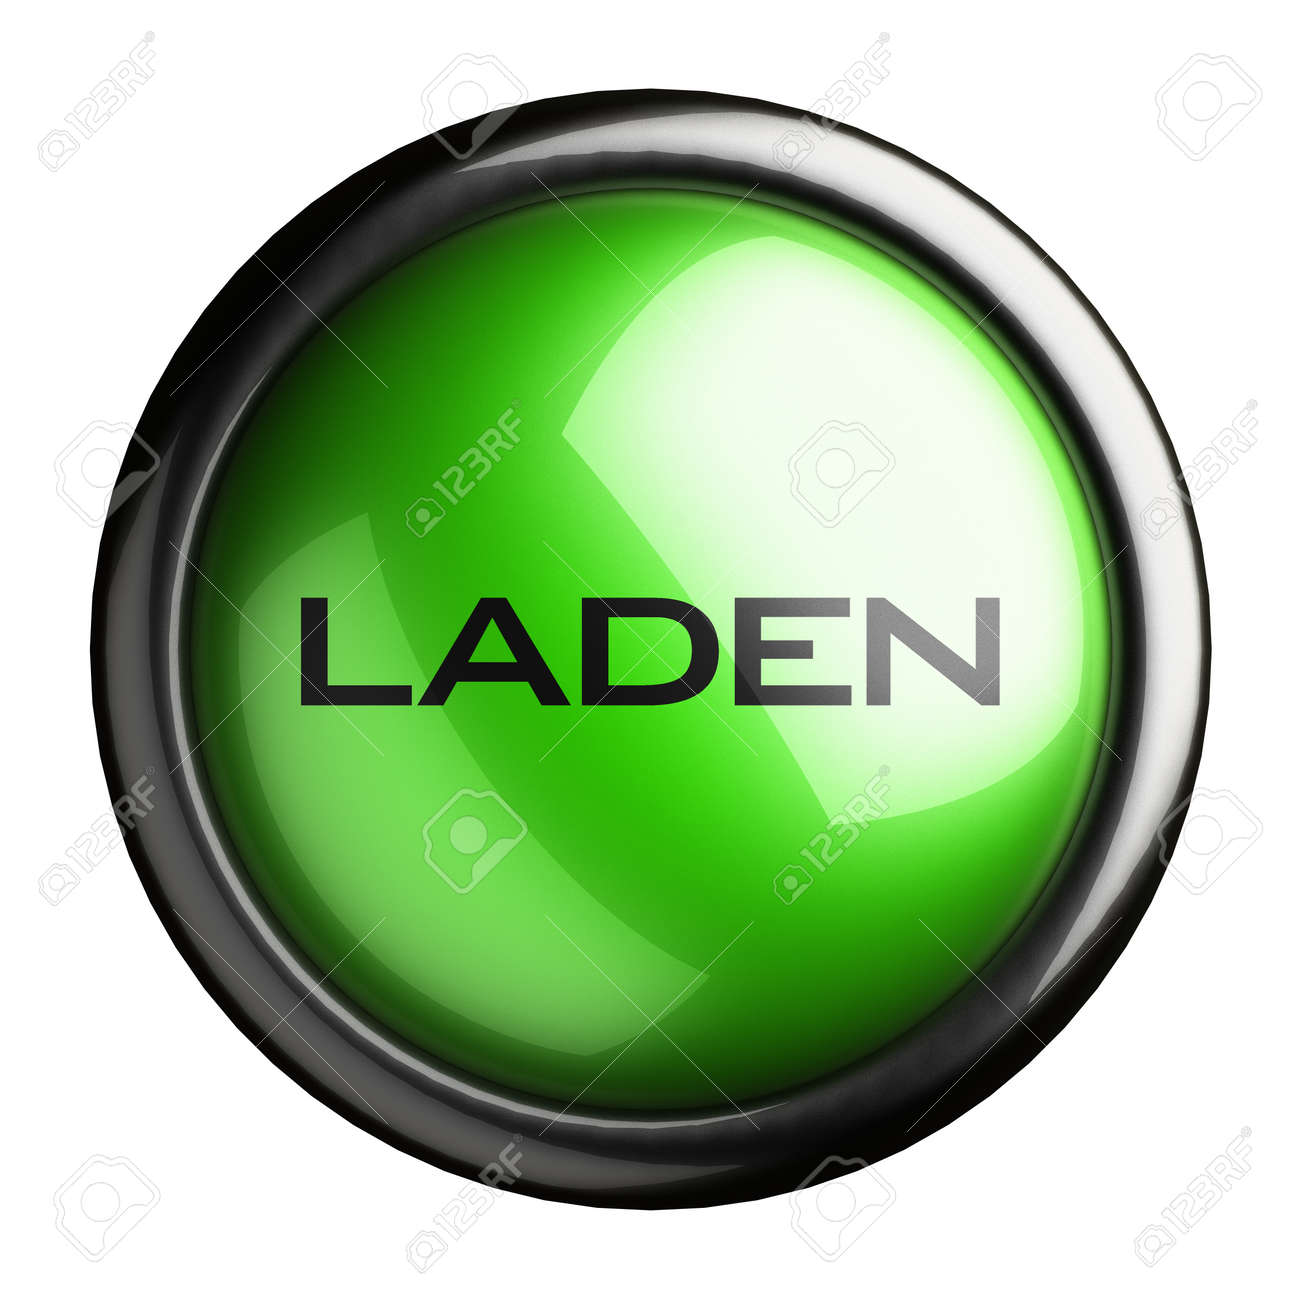 Word on the button Stock Photo - 16399710